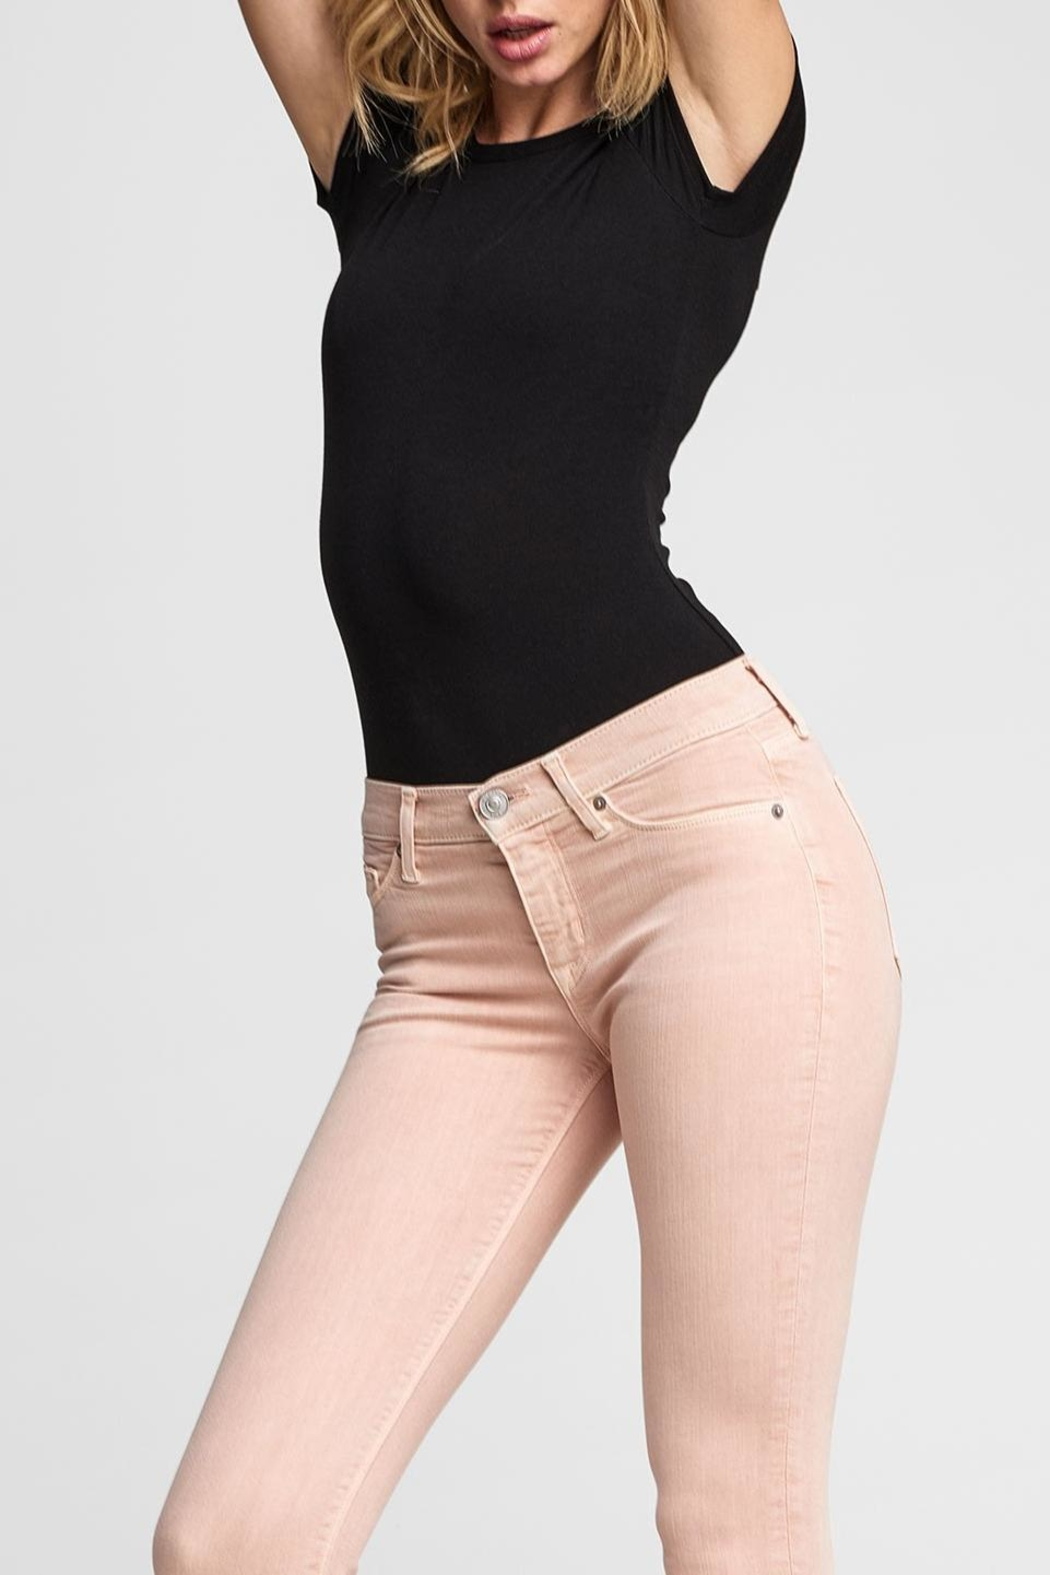 Hudson Jeans Tally Crop Worn-Rosewater - Back Cropped Image